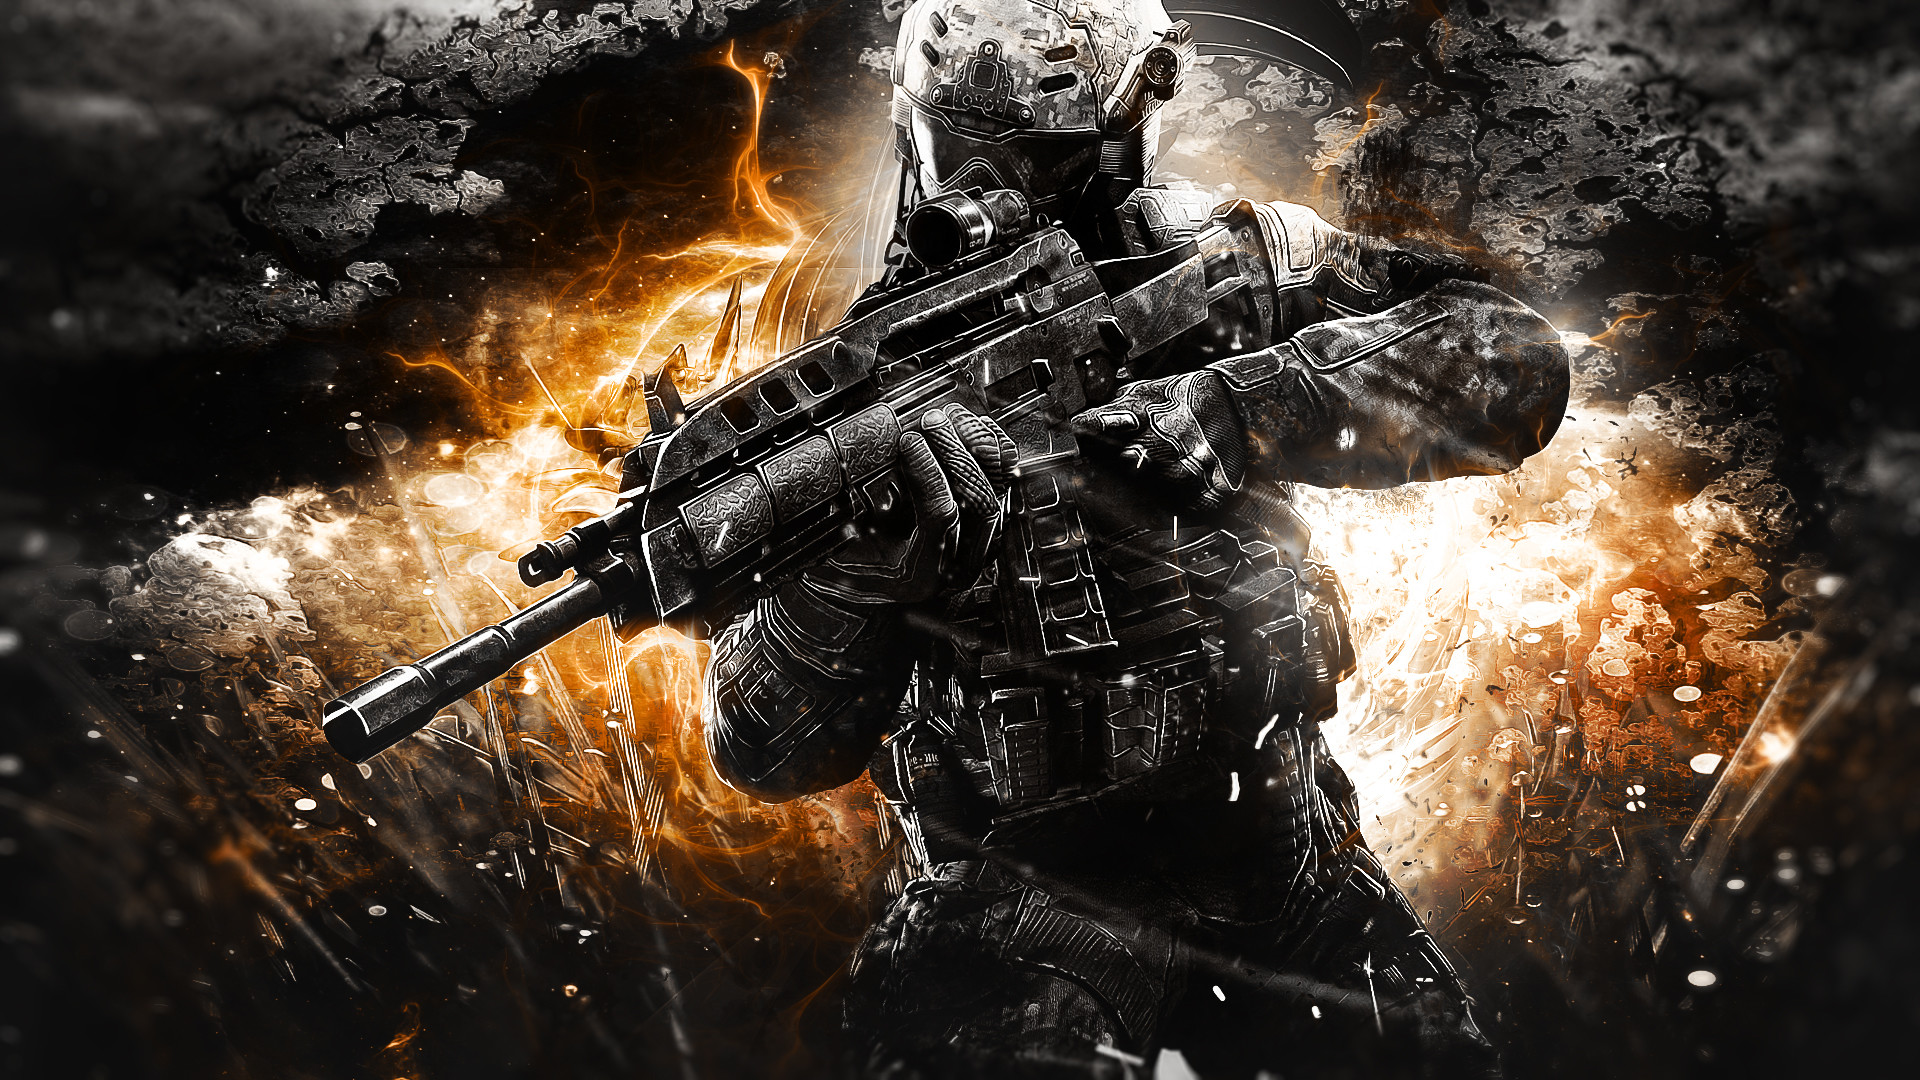 Call of Duty Black Ops 3 With Resolutions 1920×1080 Pixel